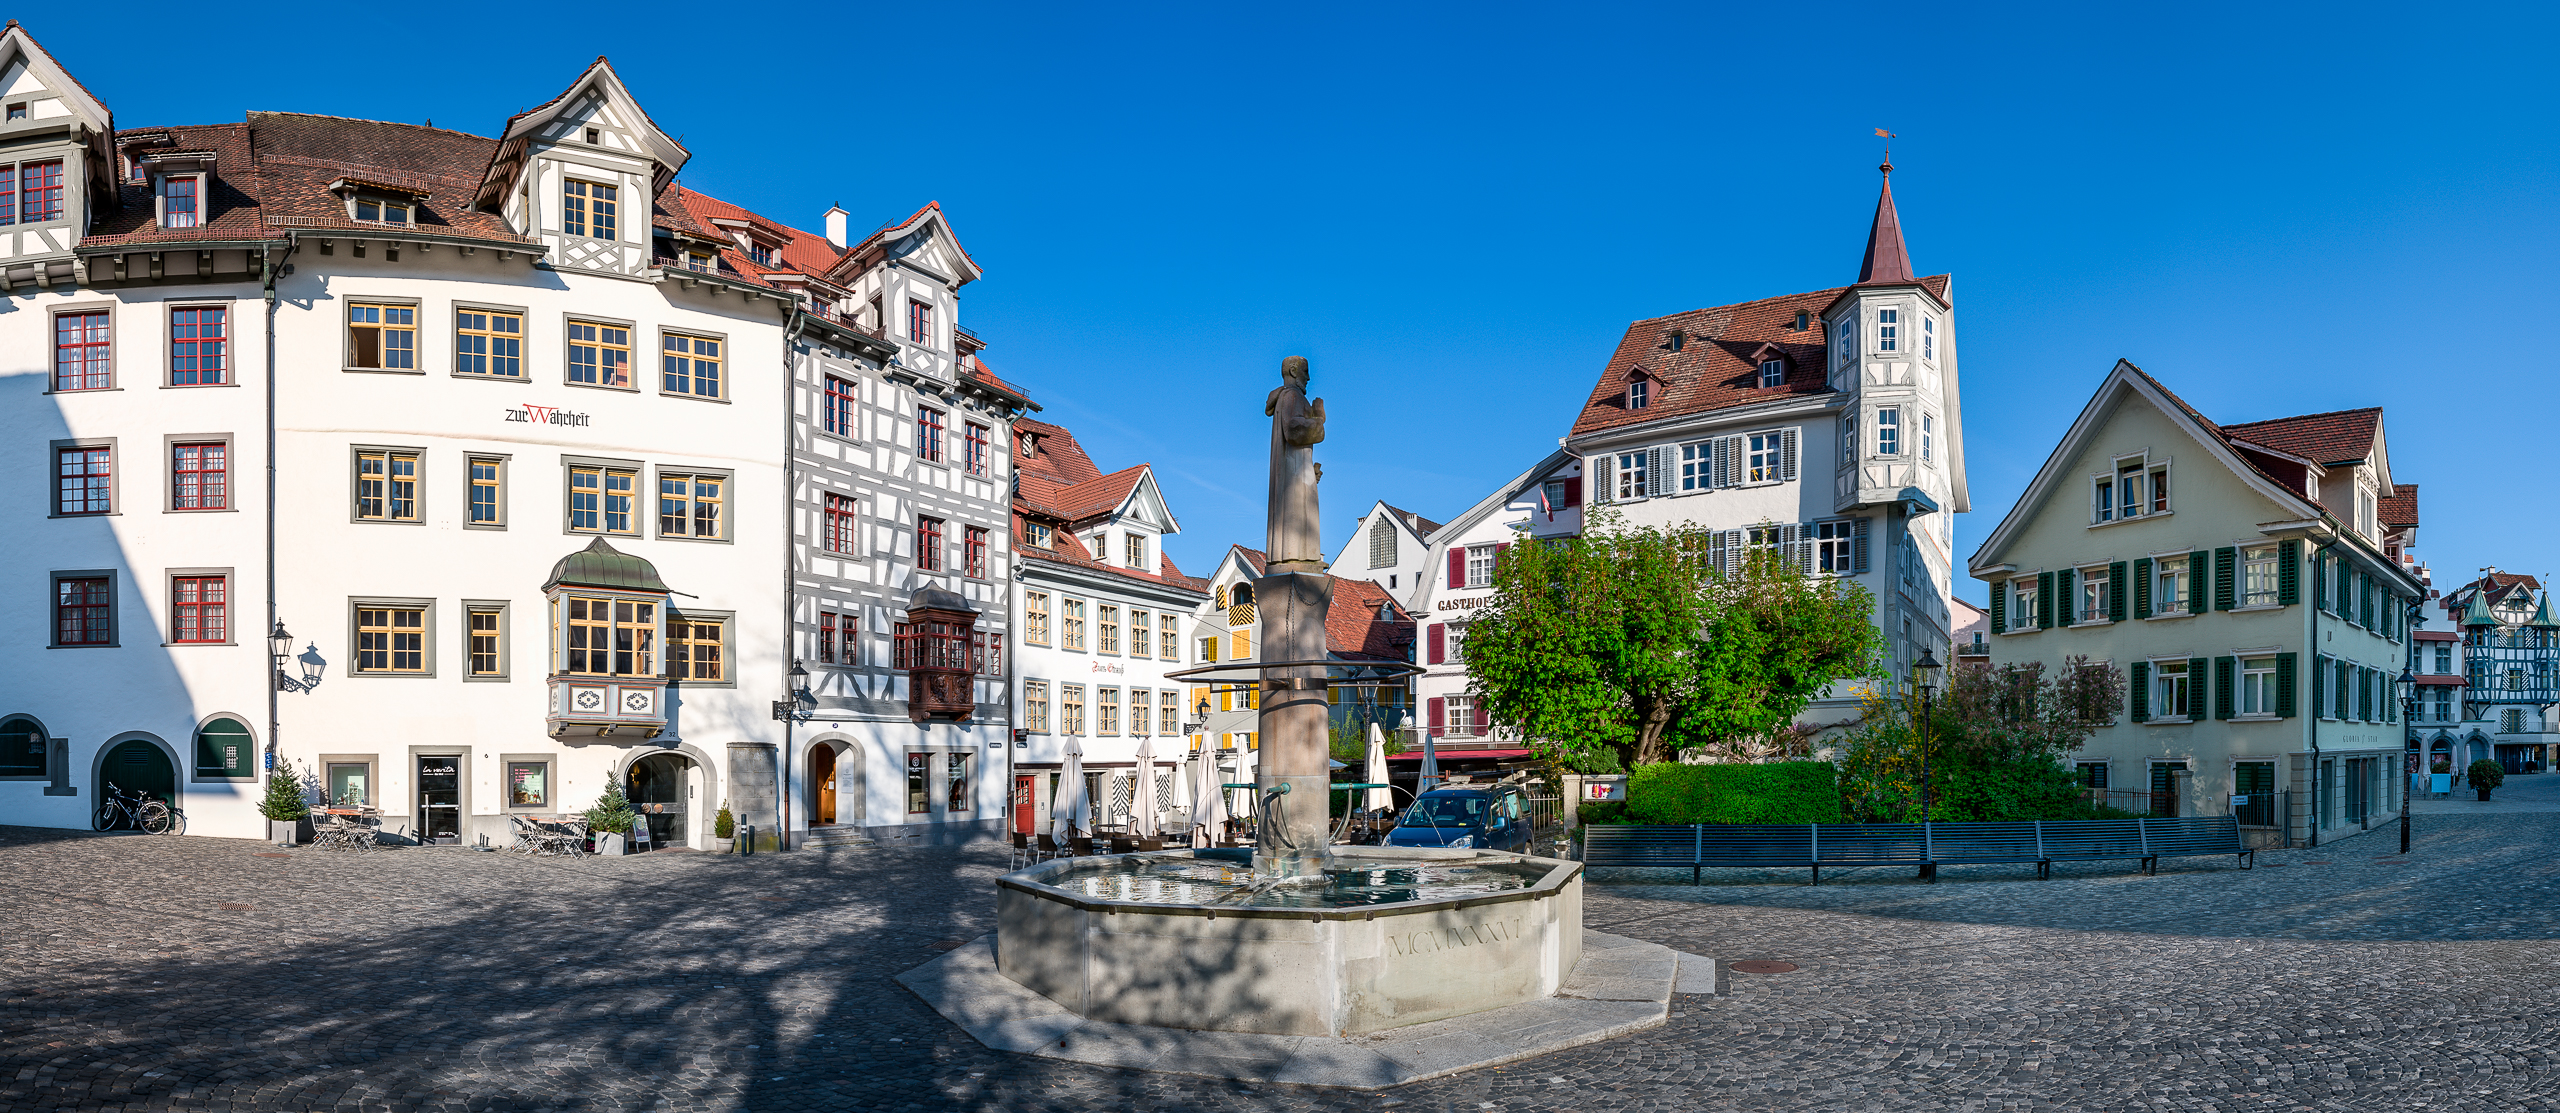 Quartierverein-Gallusplatz-Panorama-April 2018-3